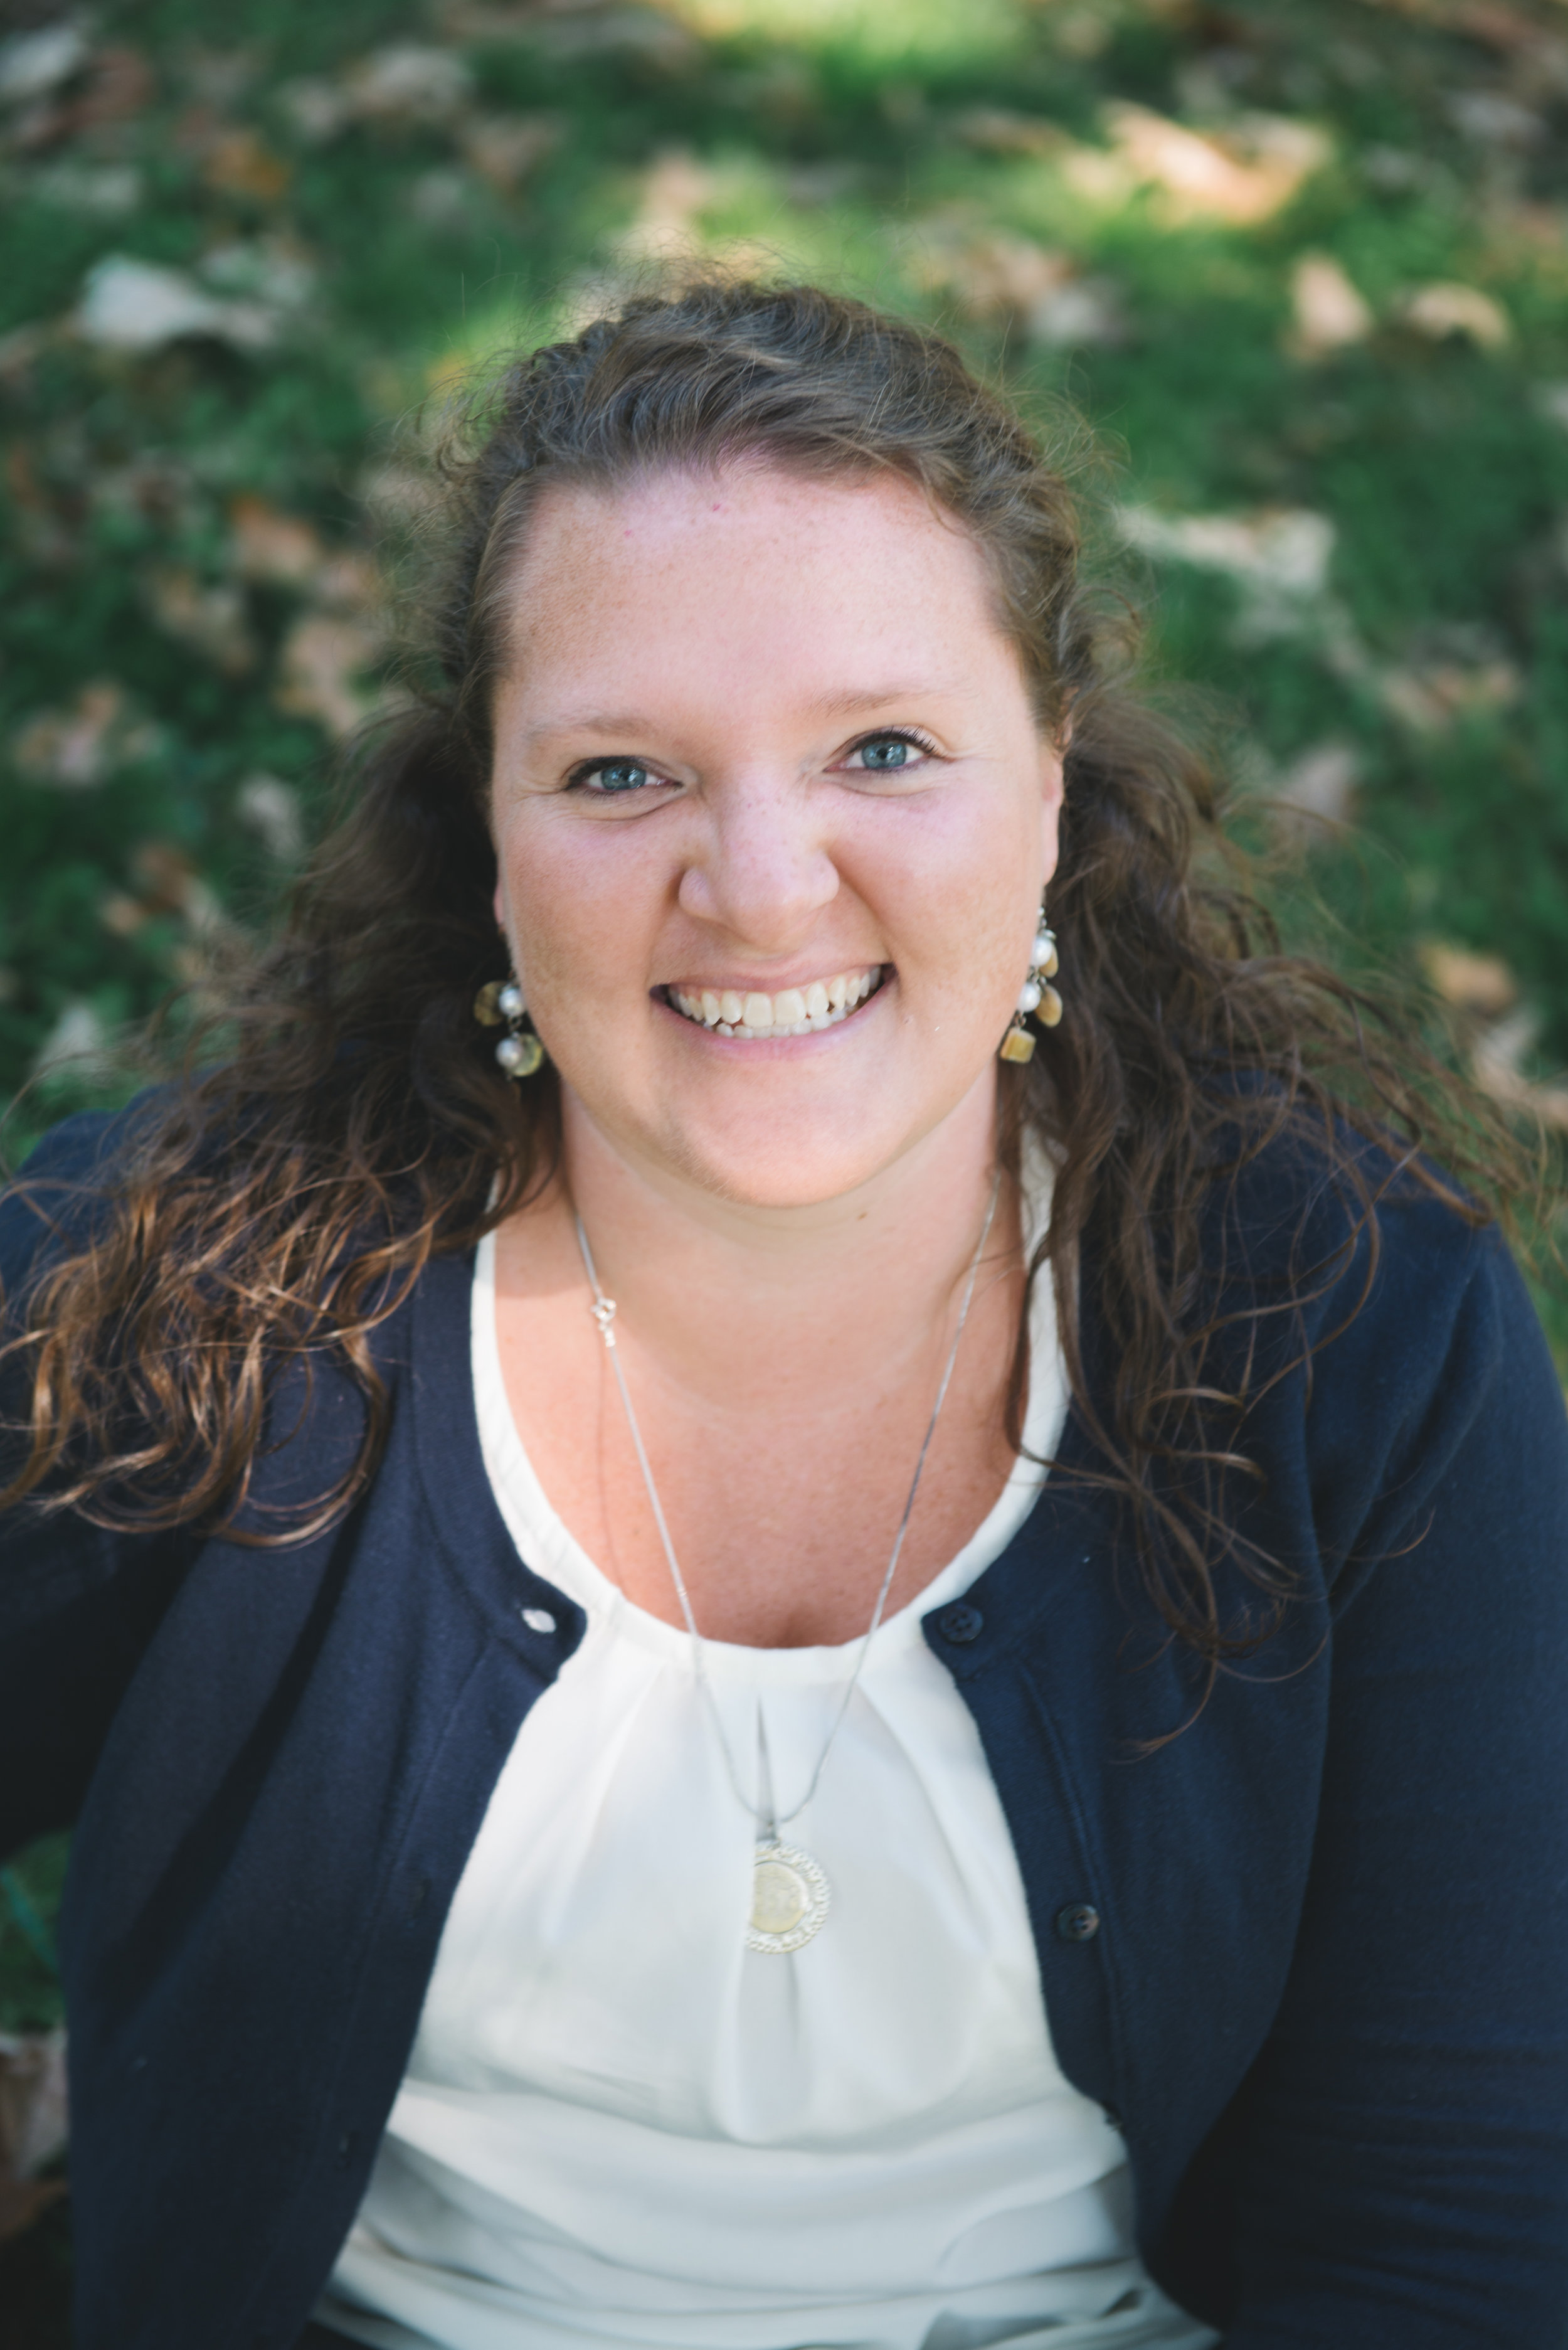 Hi everyone!  My name is Amanda Batten and I started at Clemmons United Methodist Church as the Youth Minister in August 2019.  I previously worked at churches in Lexington and Clayton, NC and also teach  religion courses at Campbell University online. My family and I have lived in Clemmons for 8 years and absolutely adore this town!  My husband, Mark Batten, works at Wake Forest Divinity School, and we have two amazing daughters: Claire (age 7) and Emerlyn (age 2).  We also love our fur babies: our dog, Keely, and our horse, Luna.  I love to travel, kayak, and basically anything outdoors except play with spiders and bees!